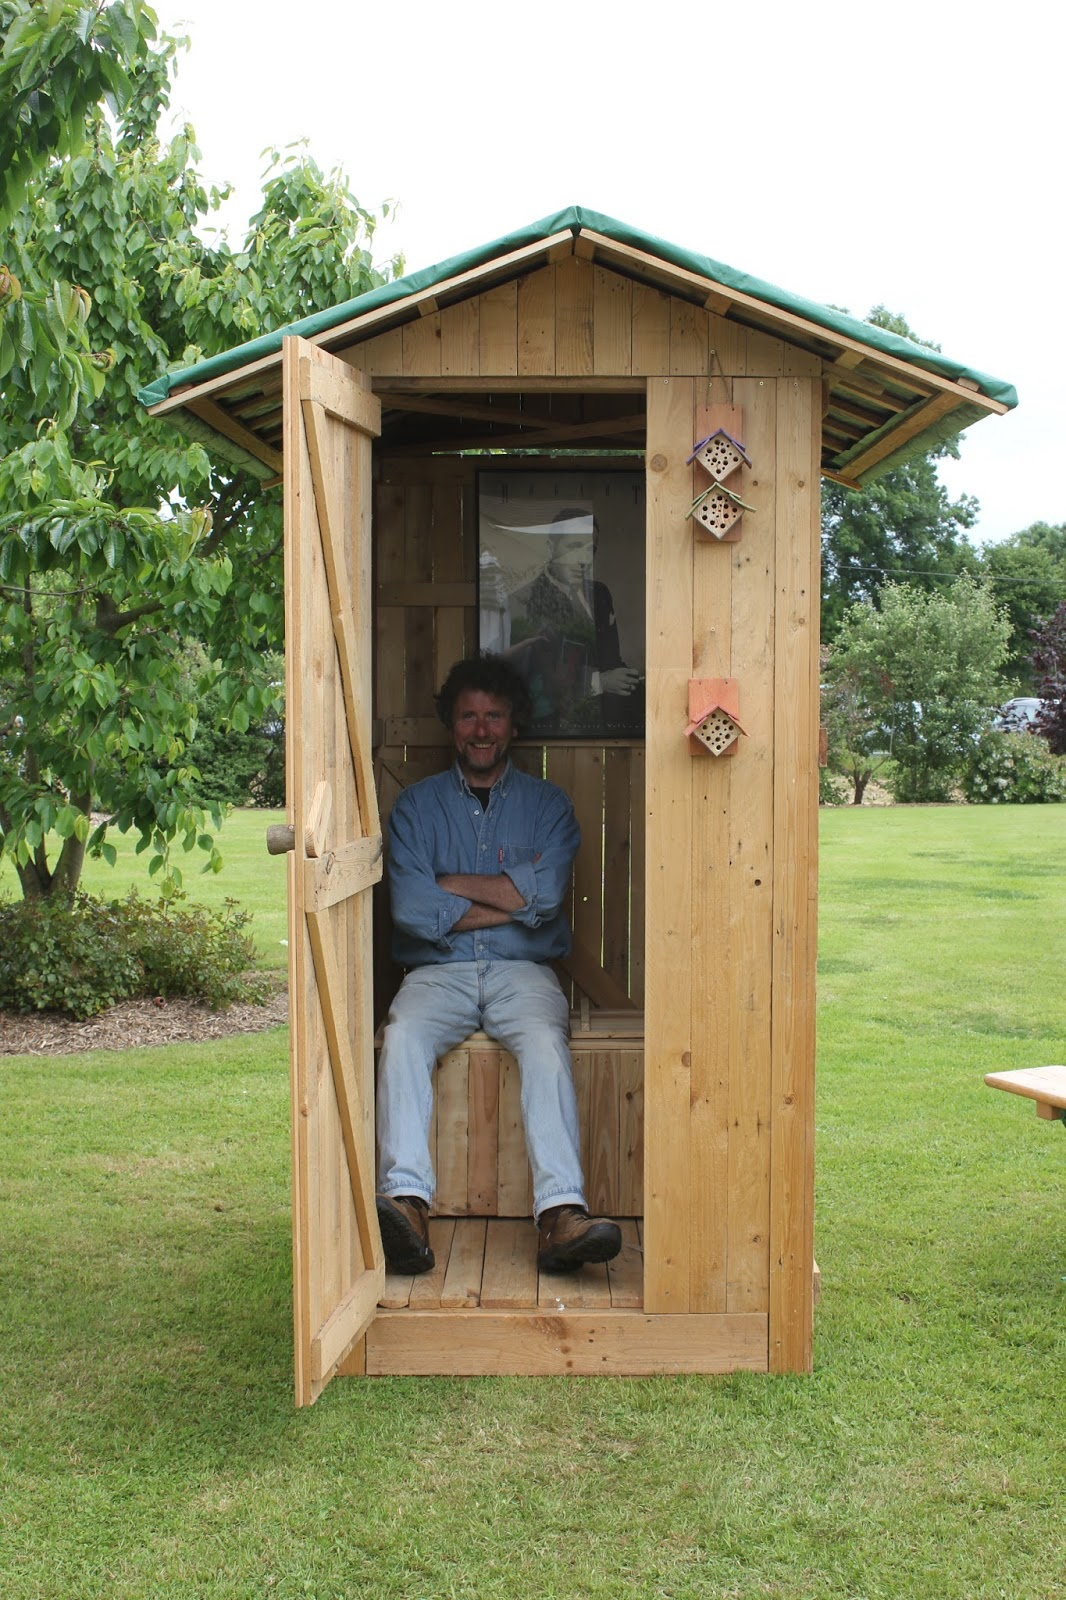 Make your own dry toilet Part 3 - The seats